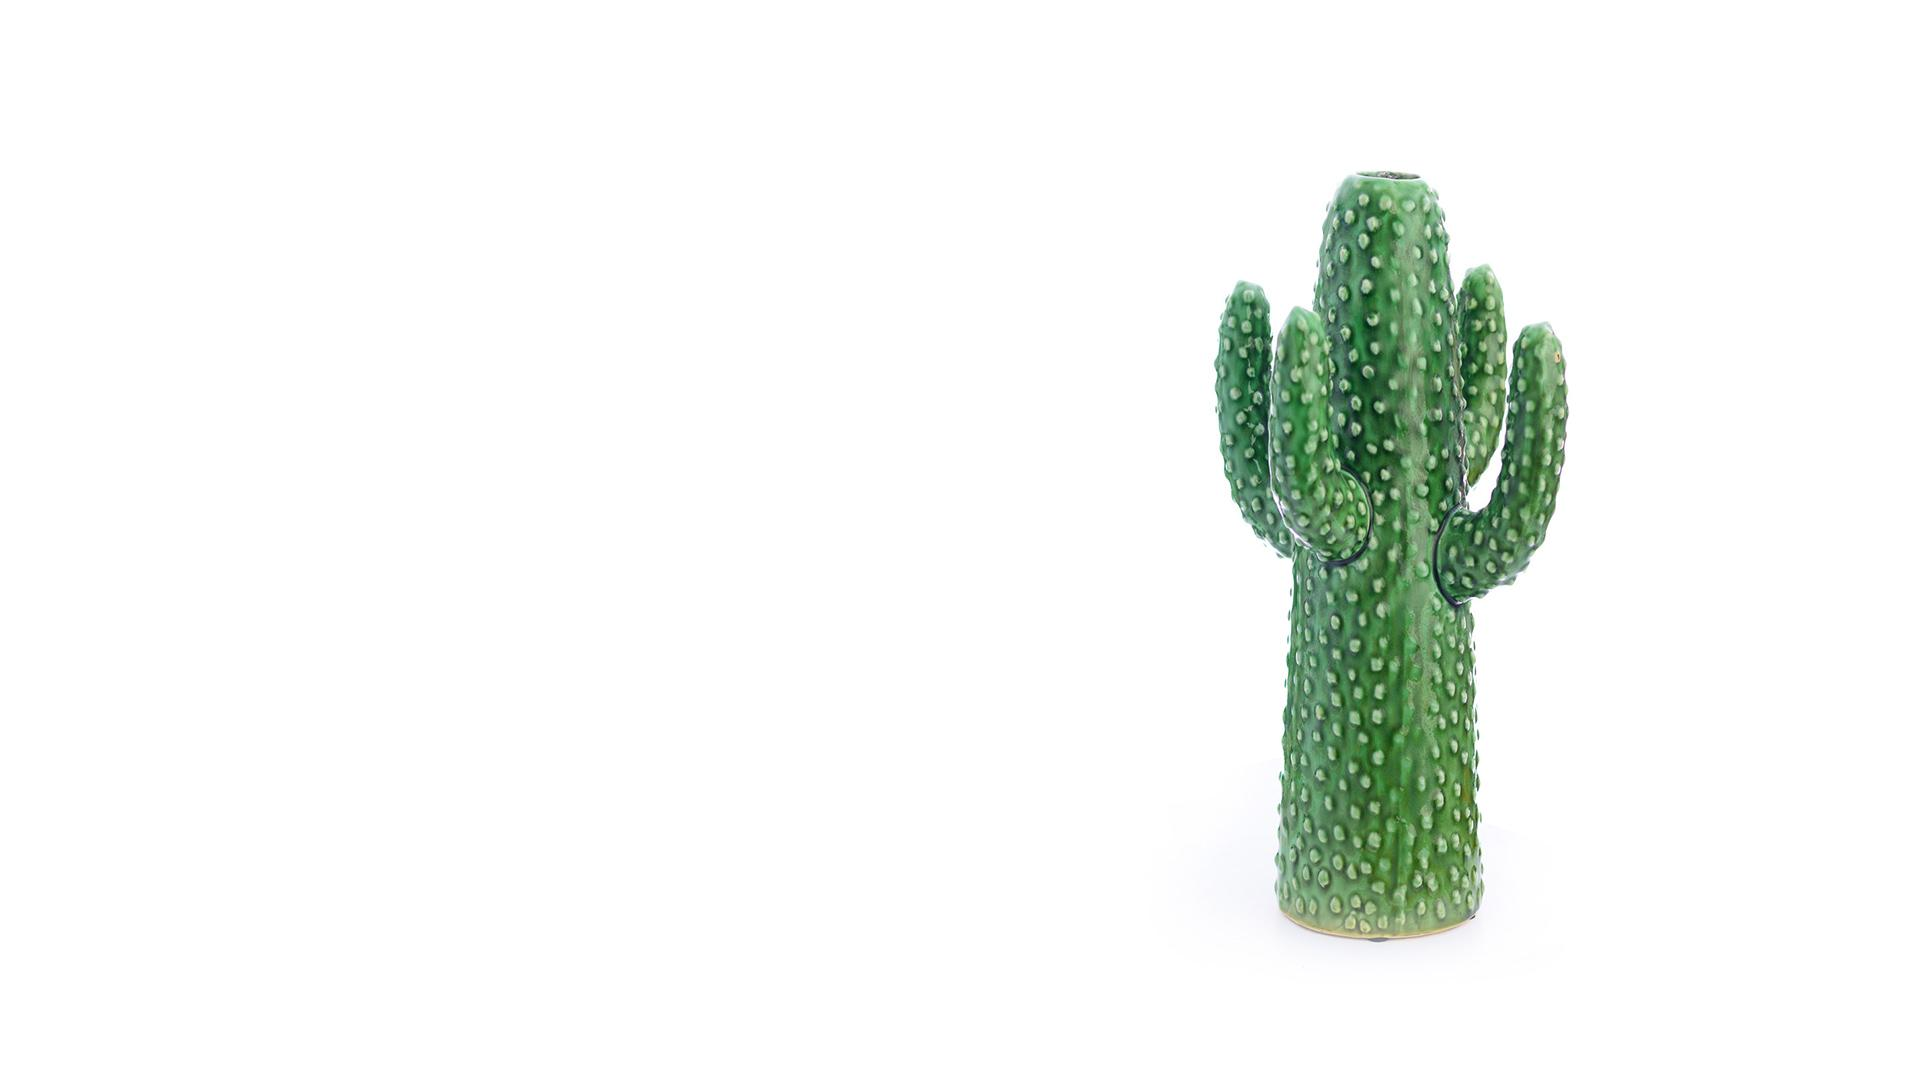 Medium Cactus Vase - Celebrity Big Brother Summer